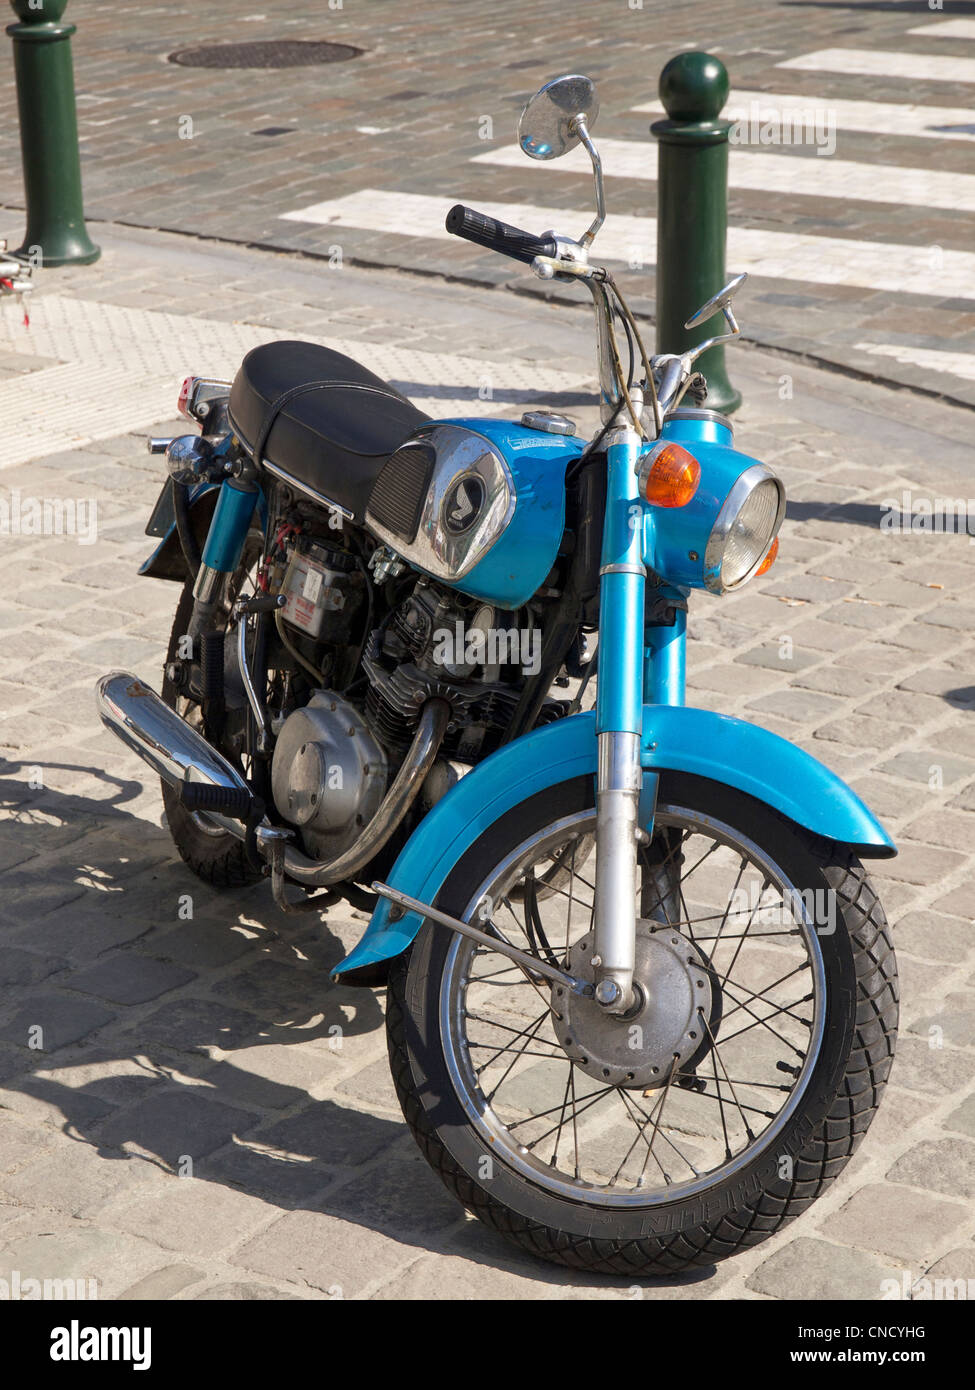 Classic sixties Honda twin-cylinder motorcycle parked on the sidewalk in Brussels, Belgium - Stock Image